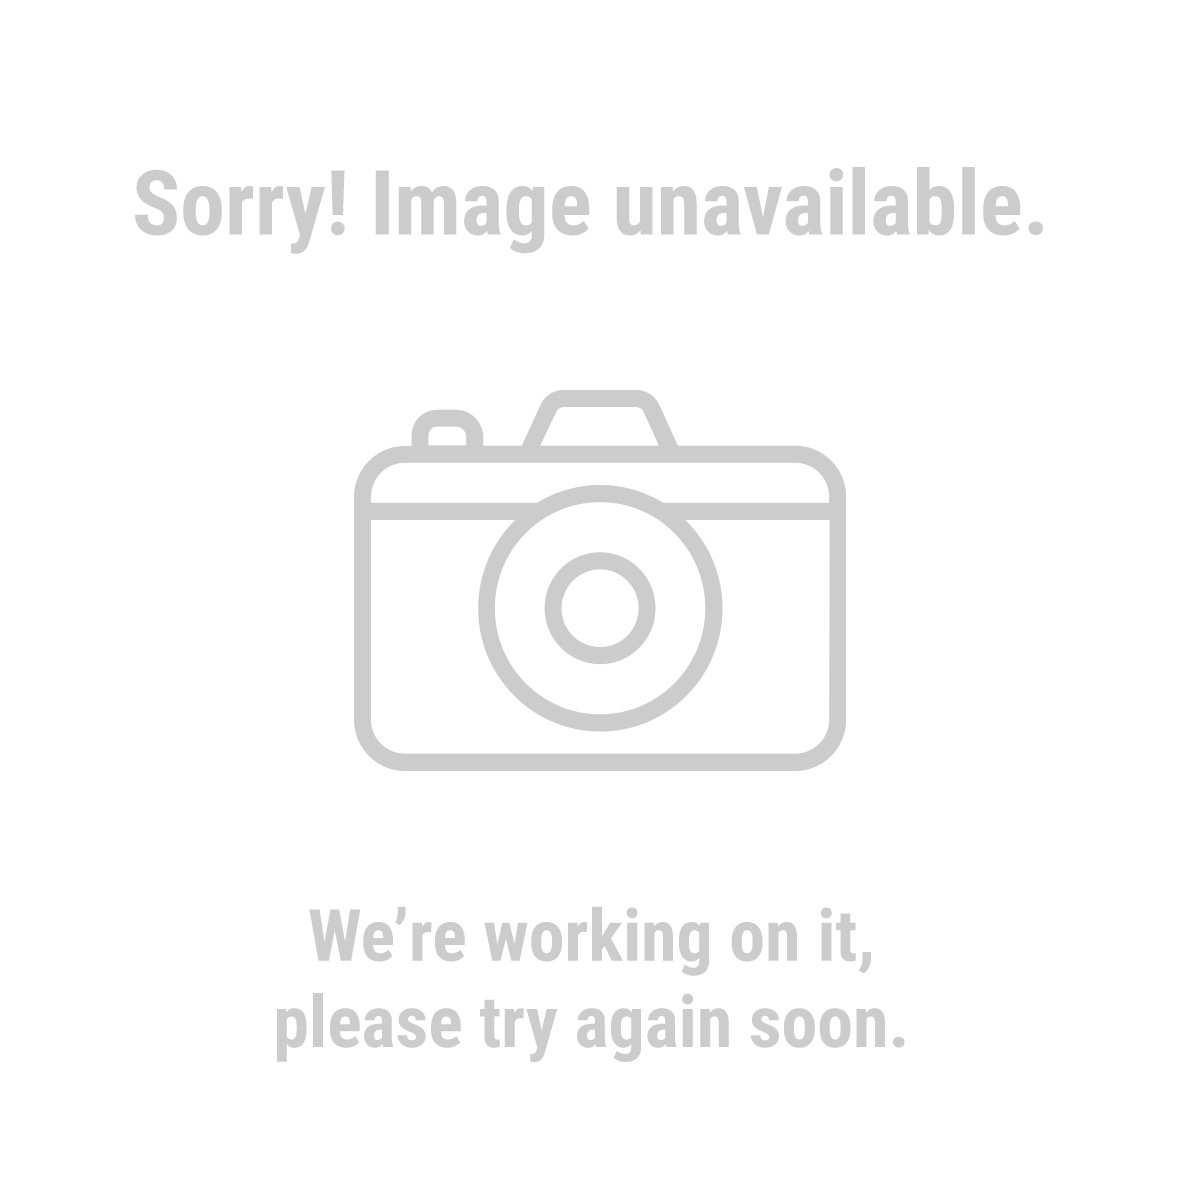 Haul-Master 67646 17 Ft. Type 1A Multi-Task Ladder